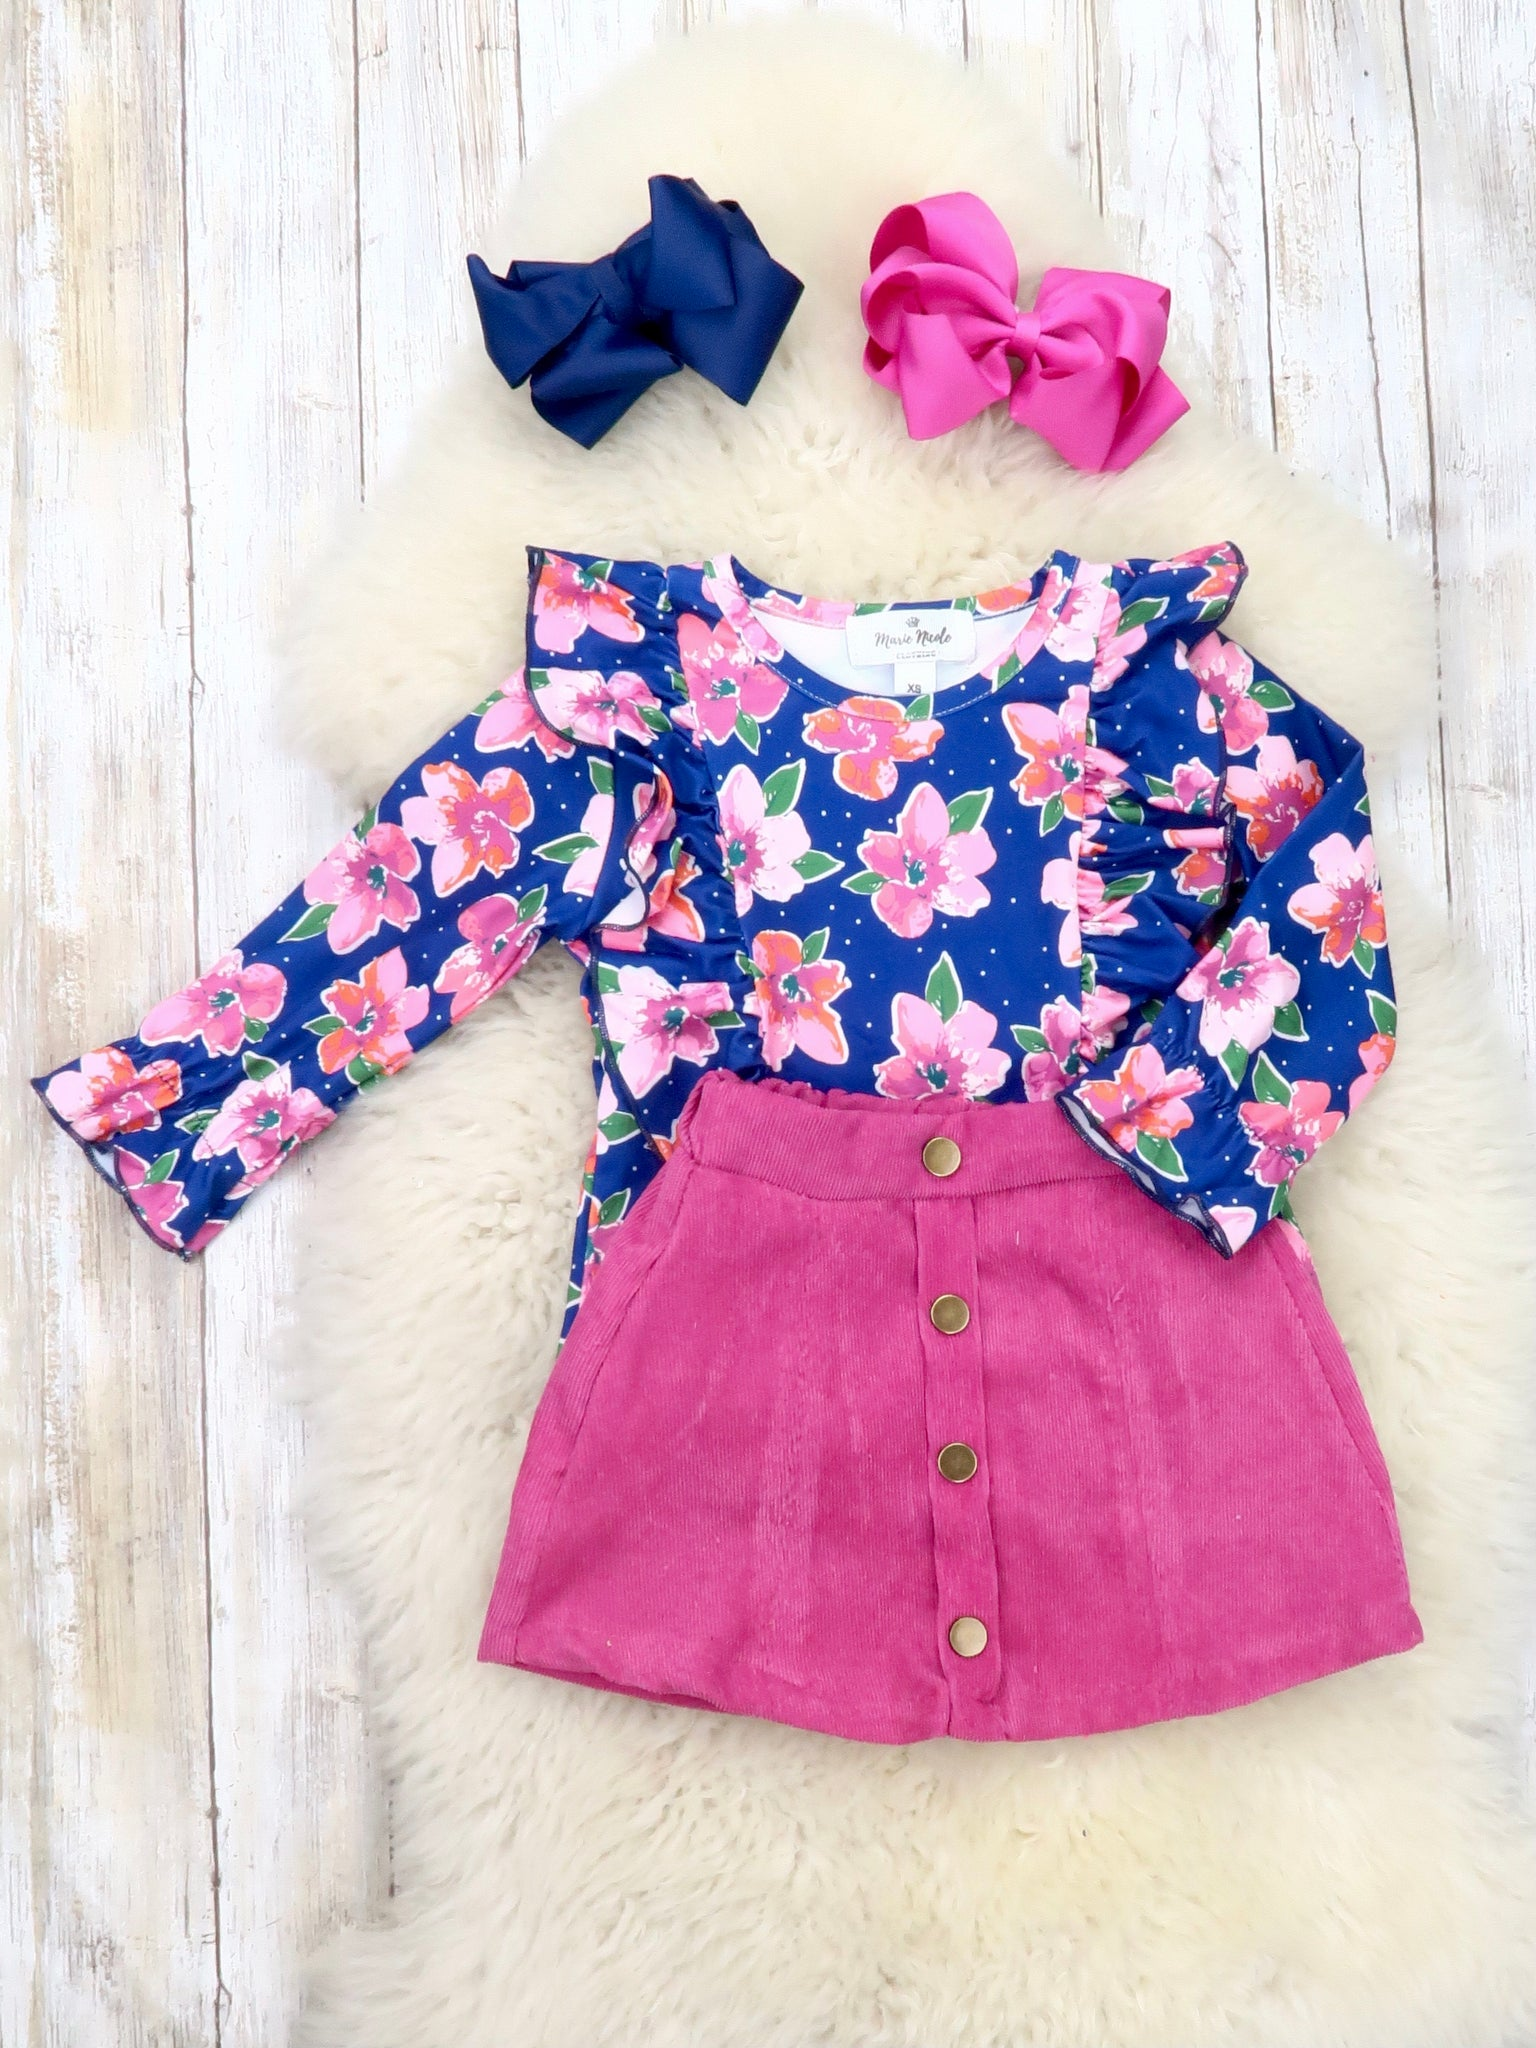 Navy Floral Ruffle Top & Magenta Button Skirt Outfit